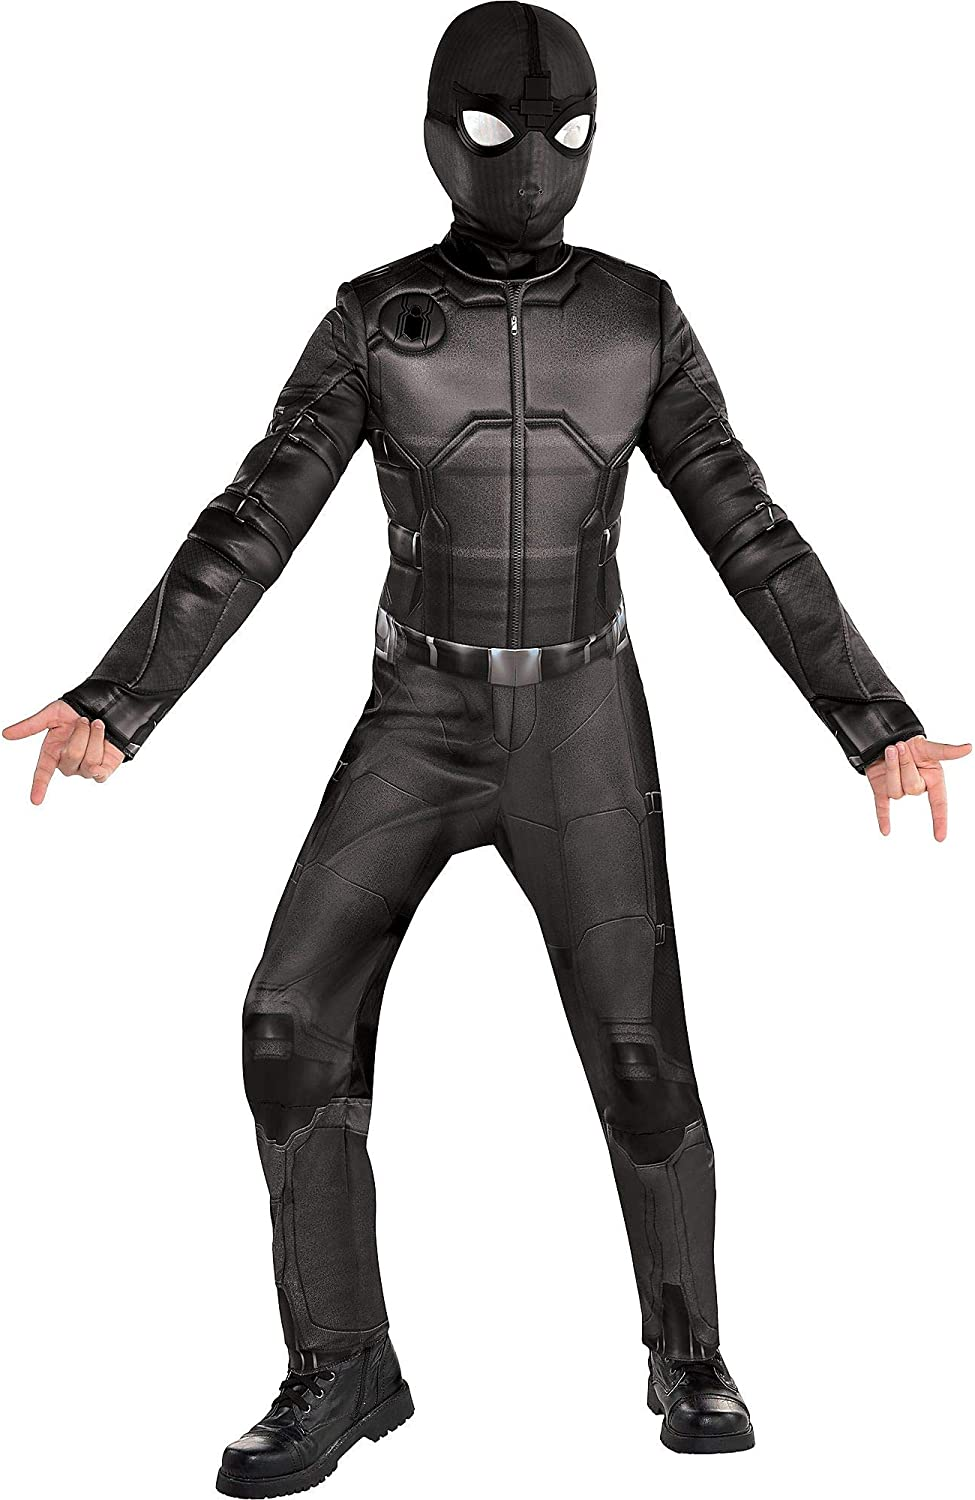 Party City Spider Man Far From Home Spider Man Stealth Suit Costume For Children Size Small Includes Mask And Goggles Clothing